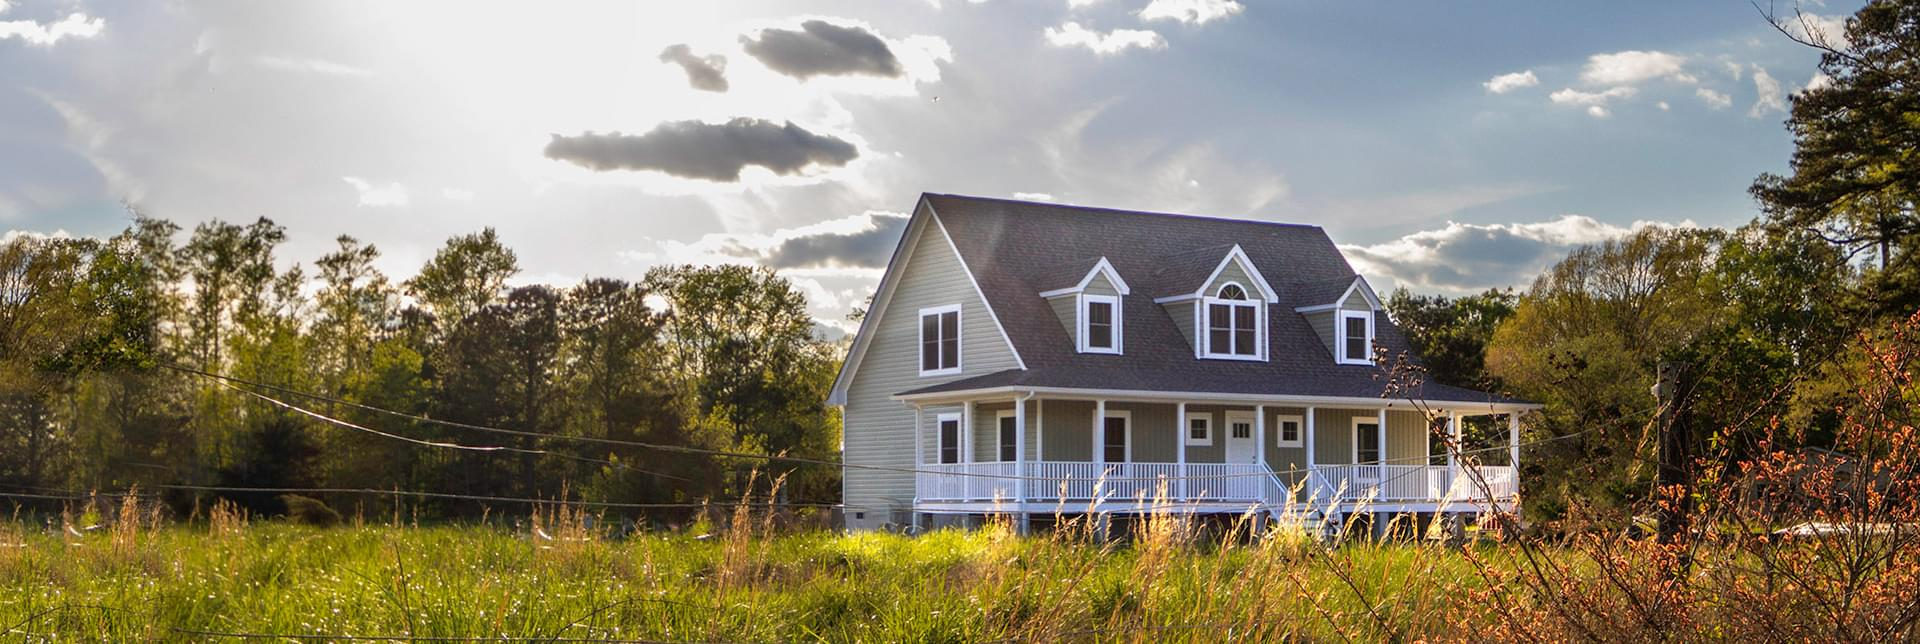 New Homes in Vance County NC